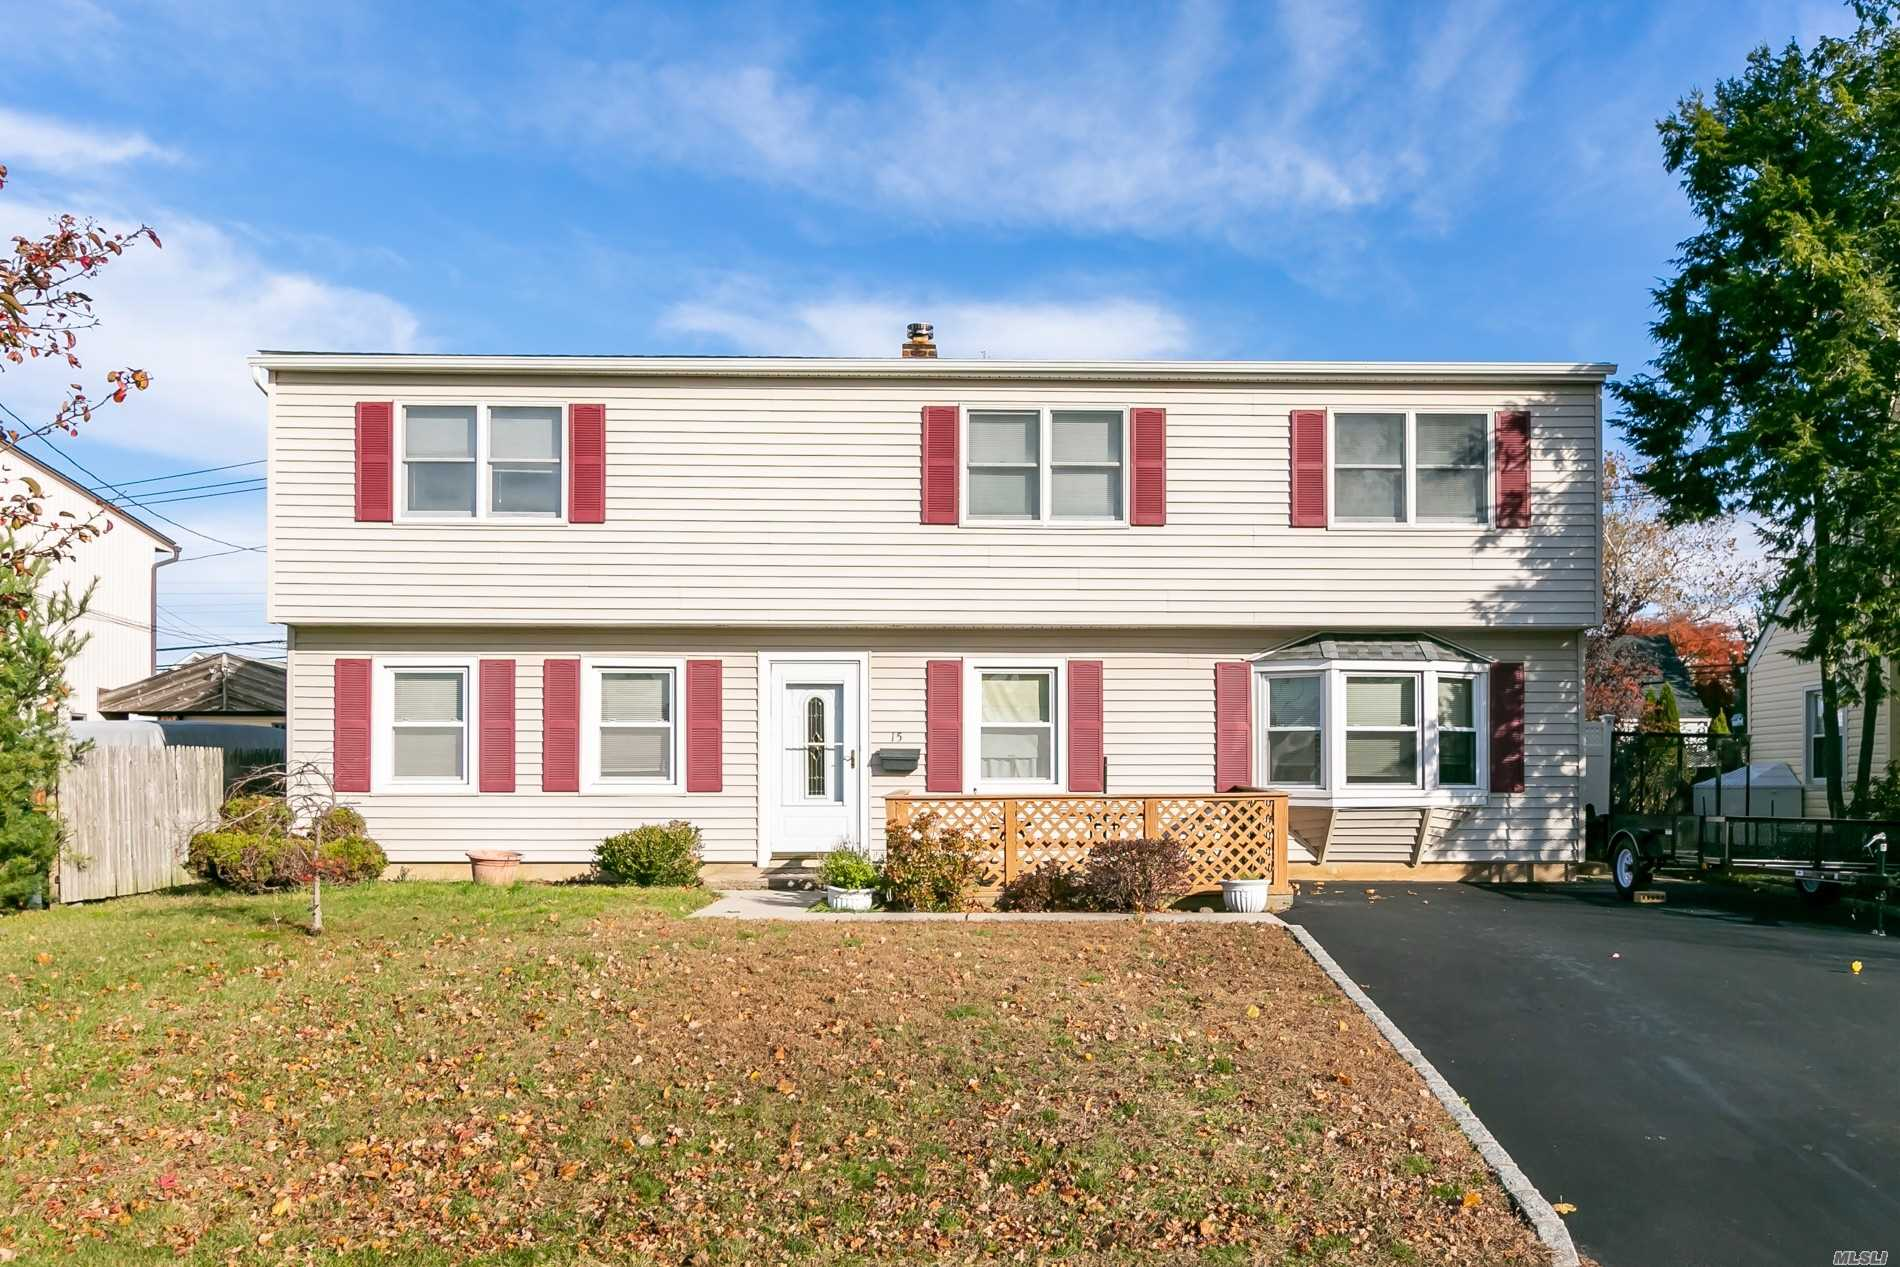 Move Right Into This Spacious Front And Rear Dormered Expanded Cape! Great Layout Perfect For Entertaining. Tons Of Room And Storage. Eik W/ Disherwasher, Lv, Dr, 5 Br's W/ Closets, 2 Fbth. Huge Living Area Upstairs W/ Ose. Over Head Lighting. Wall A/C's. Roof & Siding 2 Yrs Old. Ag Tank. 150 Amp Elec. Updated Boiler. Possible M/D With Proper Permits. Private White Pvc Fenced In Backyard W/ Shed & Cement Patio. Low Taxes!!!